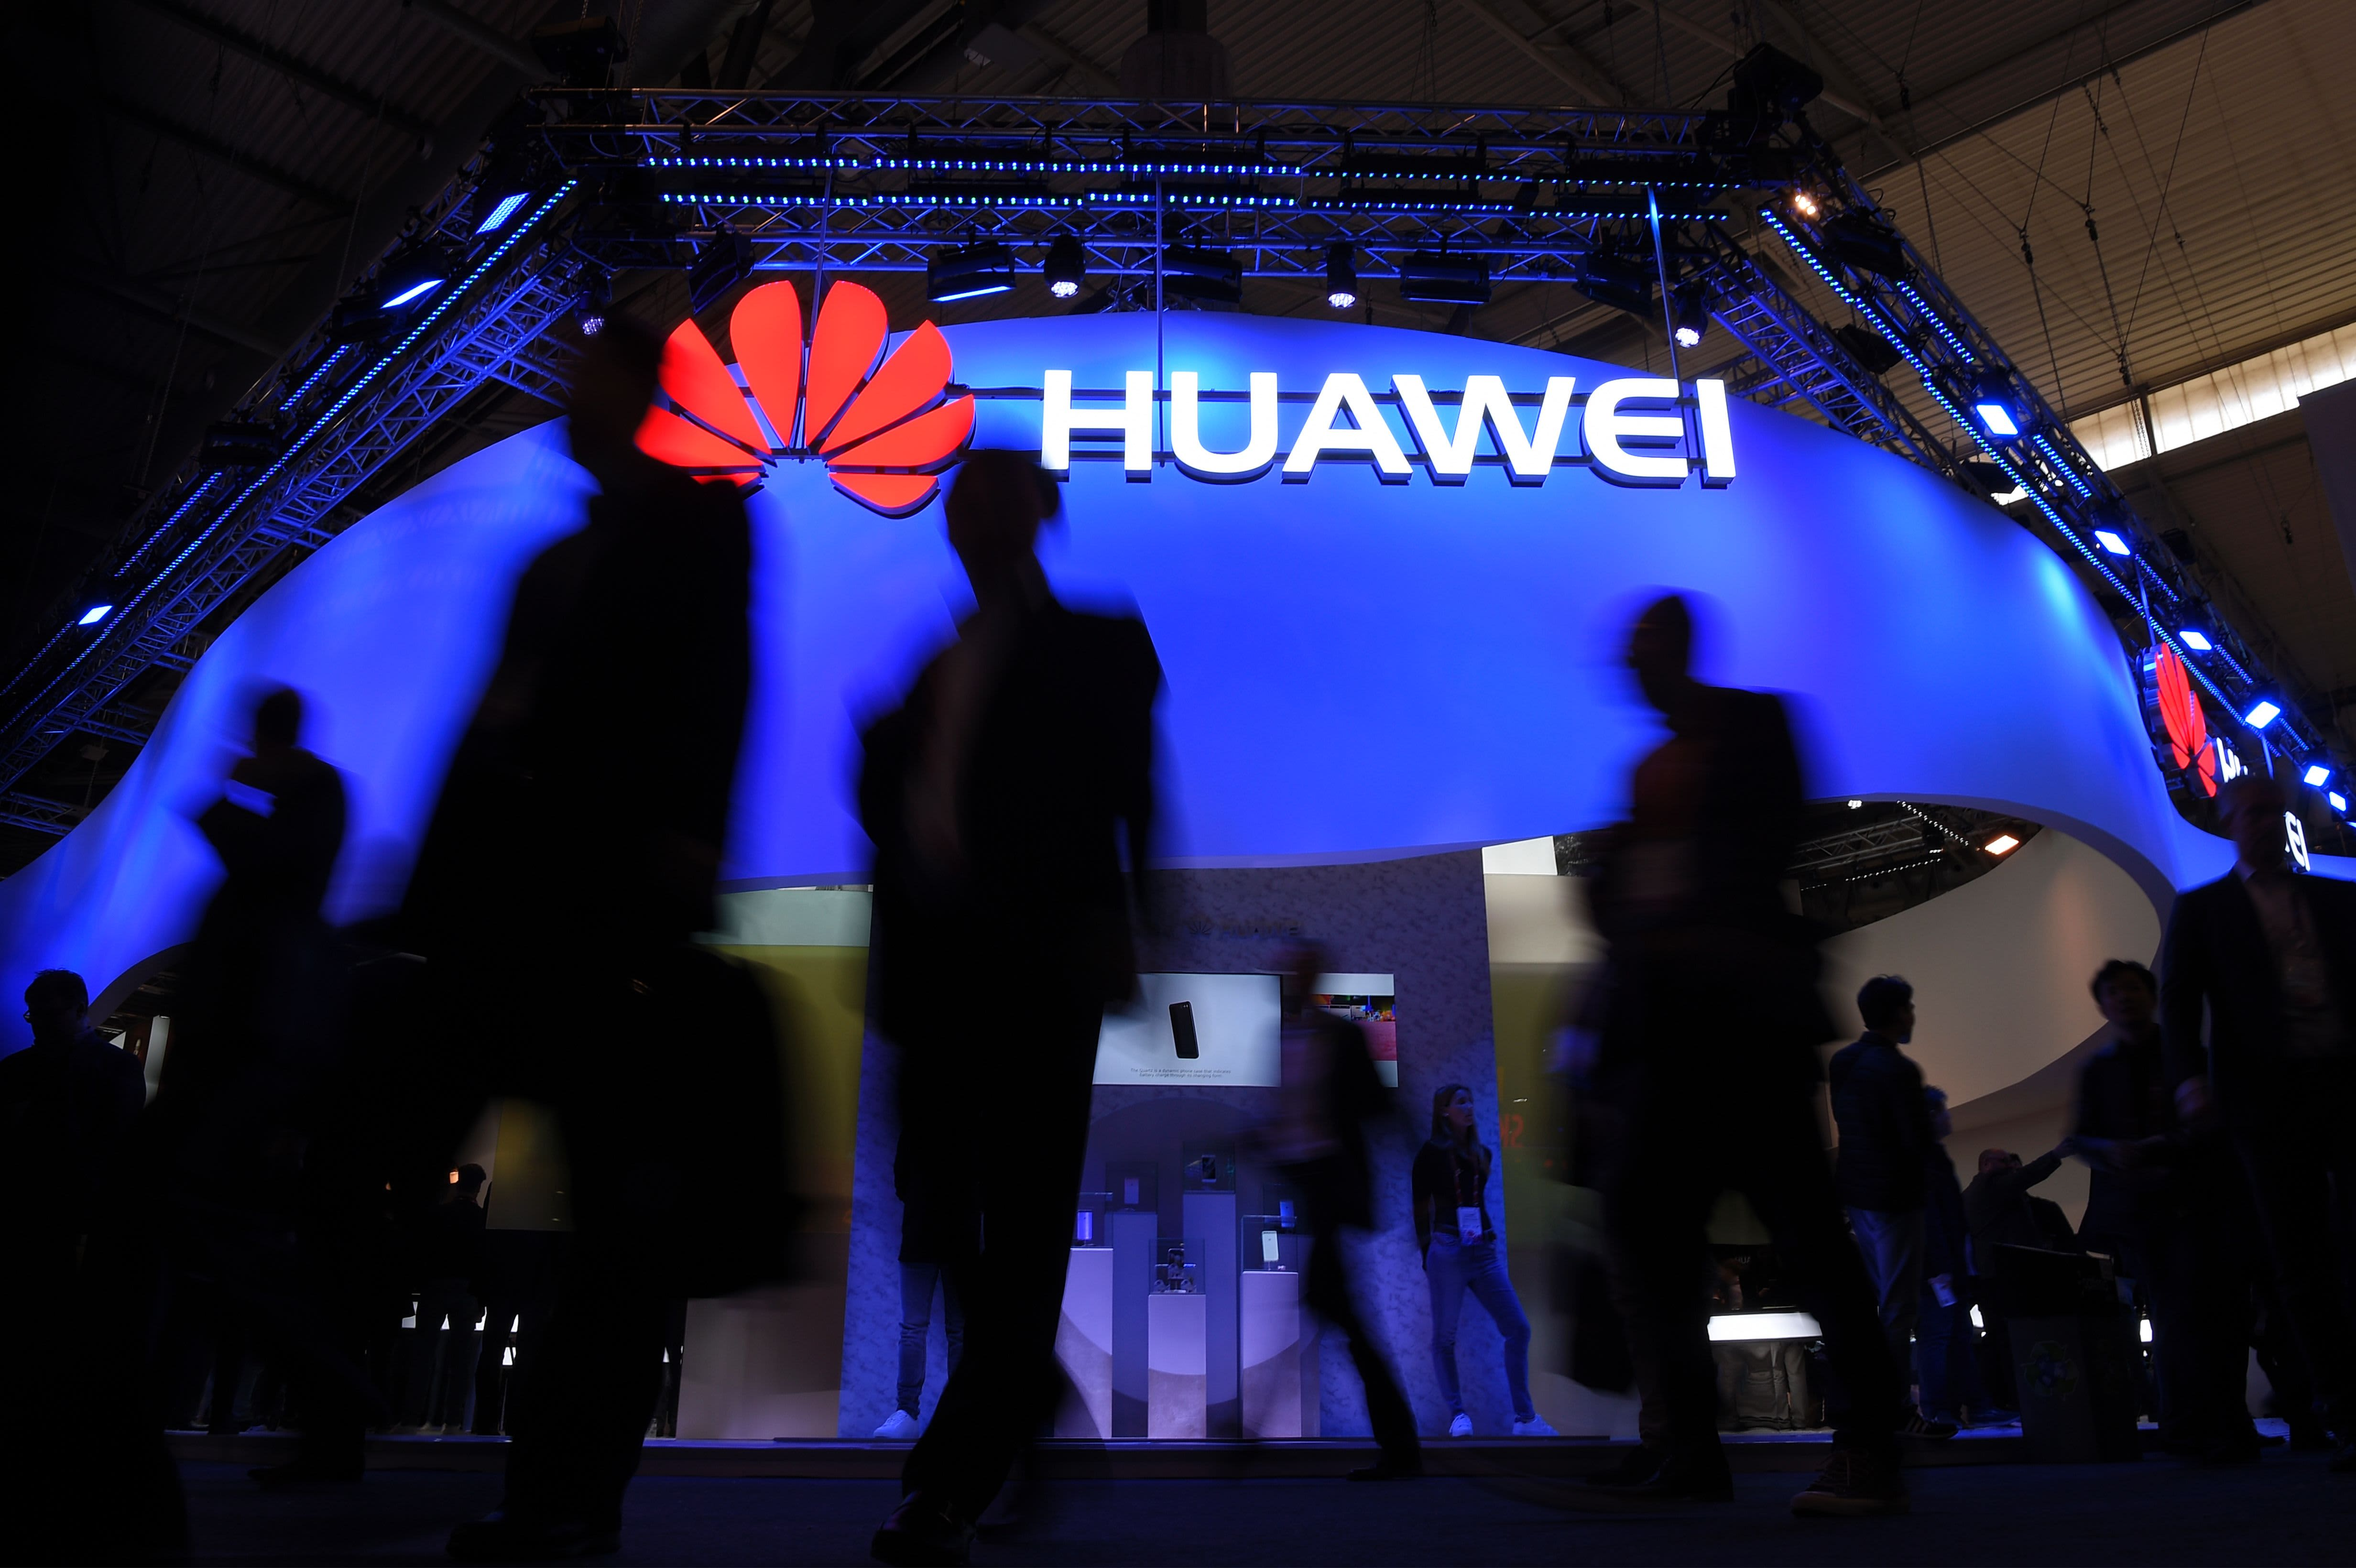 China's Huawei sues the US, claiming it shouldn't be blocked from selling to federal government